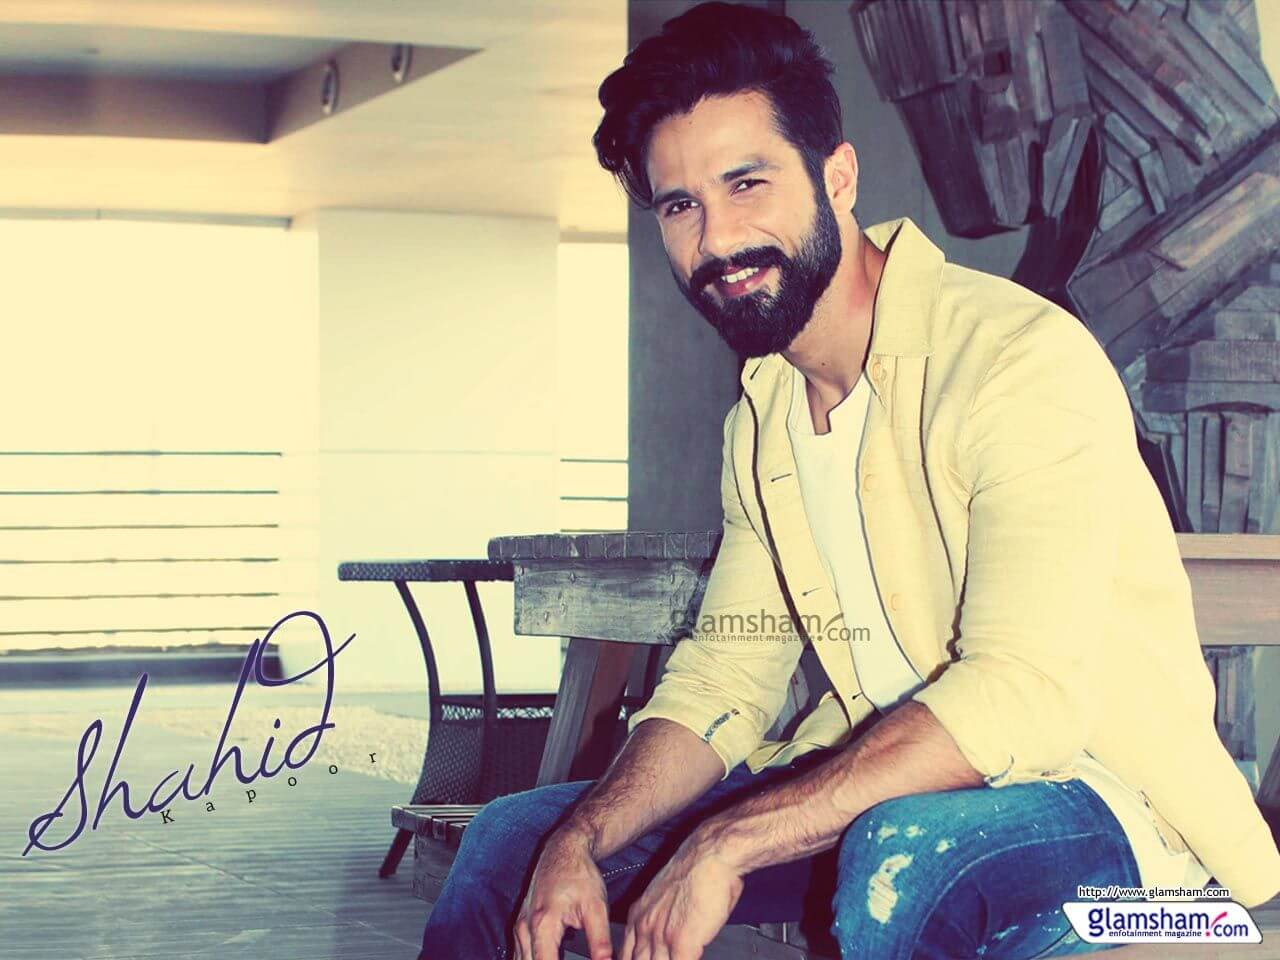 Shahid Kapoor Age, Wife, Height, Movie, Hairstyle, Family, Images(photos), Net Worth, Brother, Education, Biography, Date Of Birth, Awards, Twitter, Instagram, Wiki, Facebook, Imdb, Website (12)